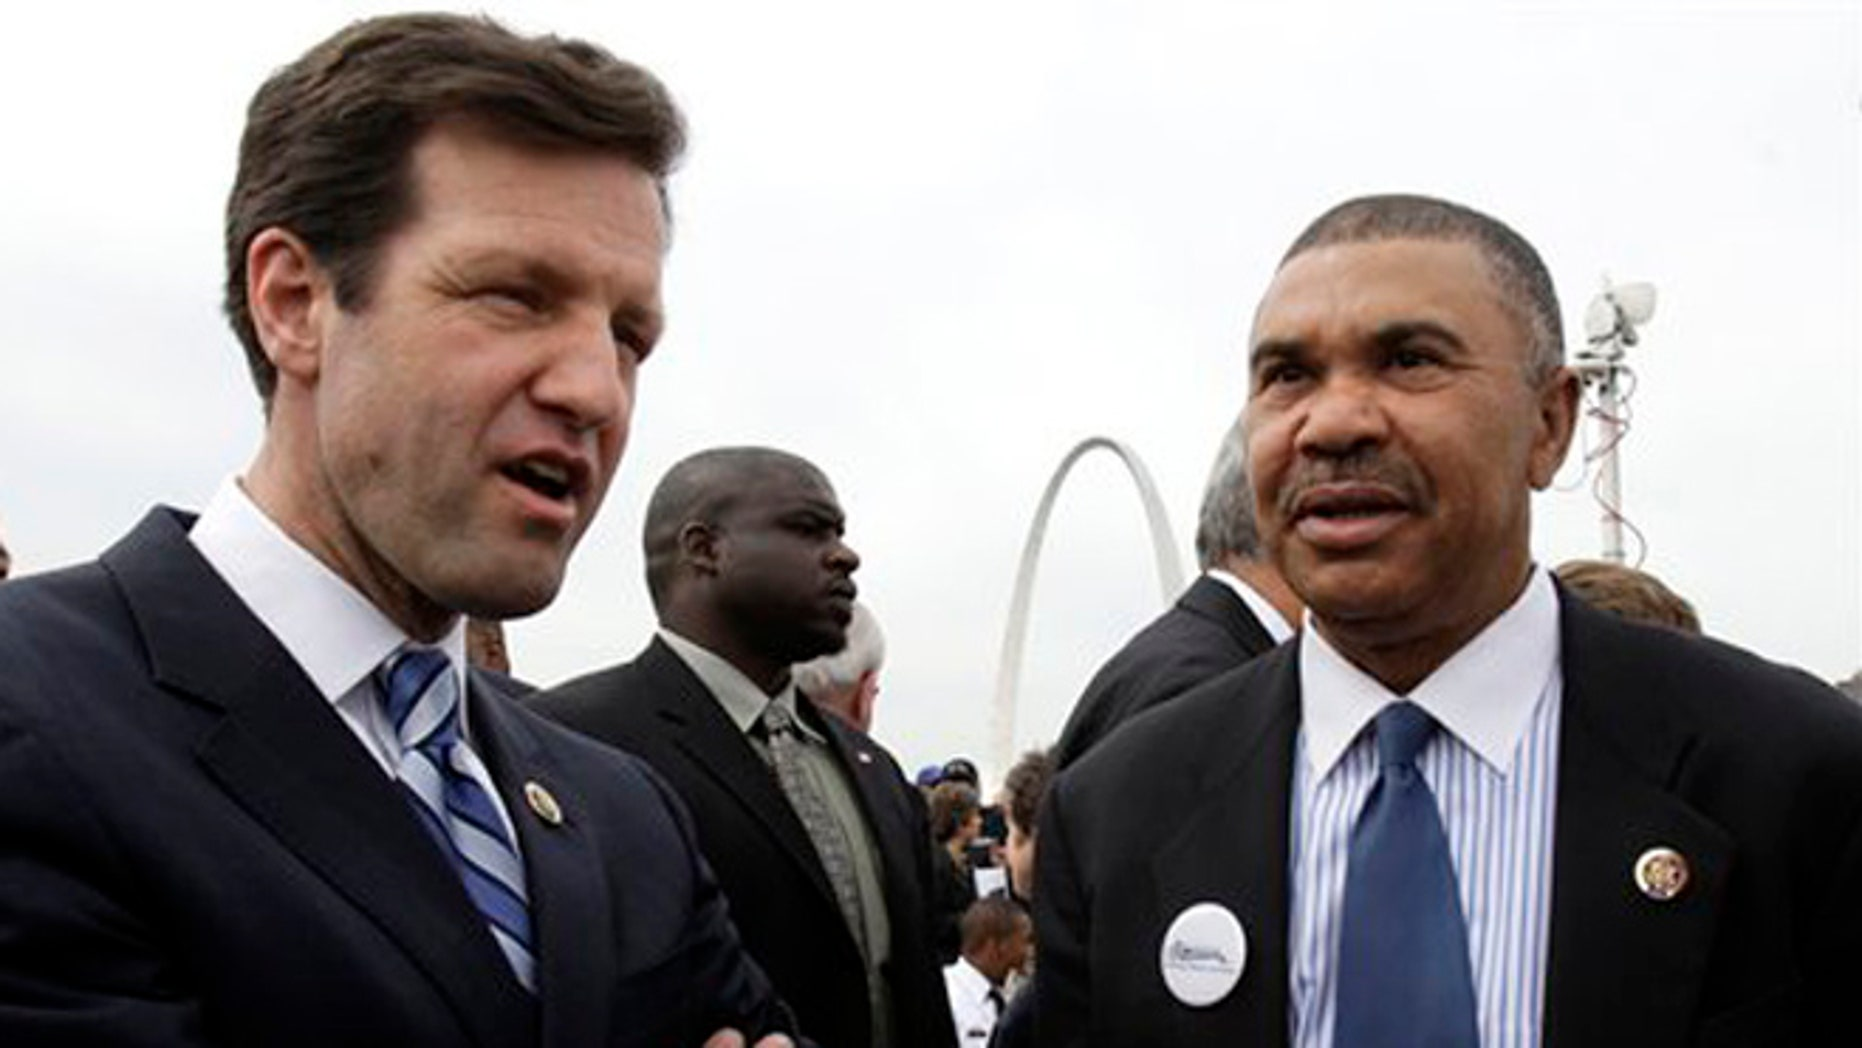 FILE: April 19, 2010:  Rep. Russ Carnahan, D-Mo., left, and Rep. William Lacy Clay, D-Mo., attend a groundbreaking ceremony in St. Louis, Mo.